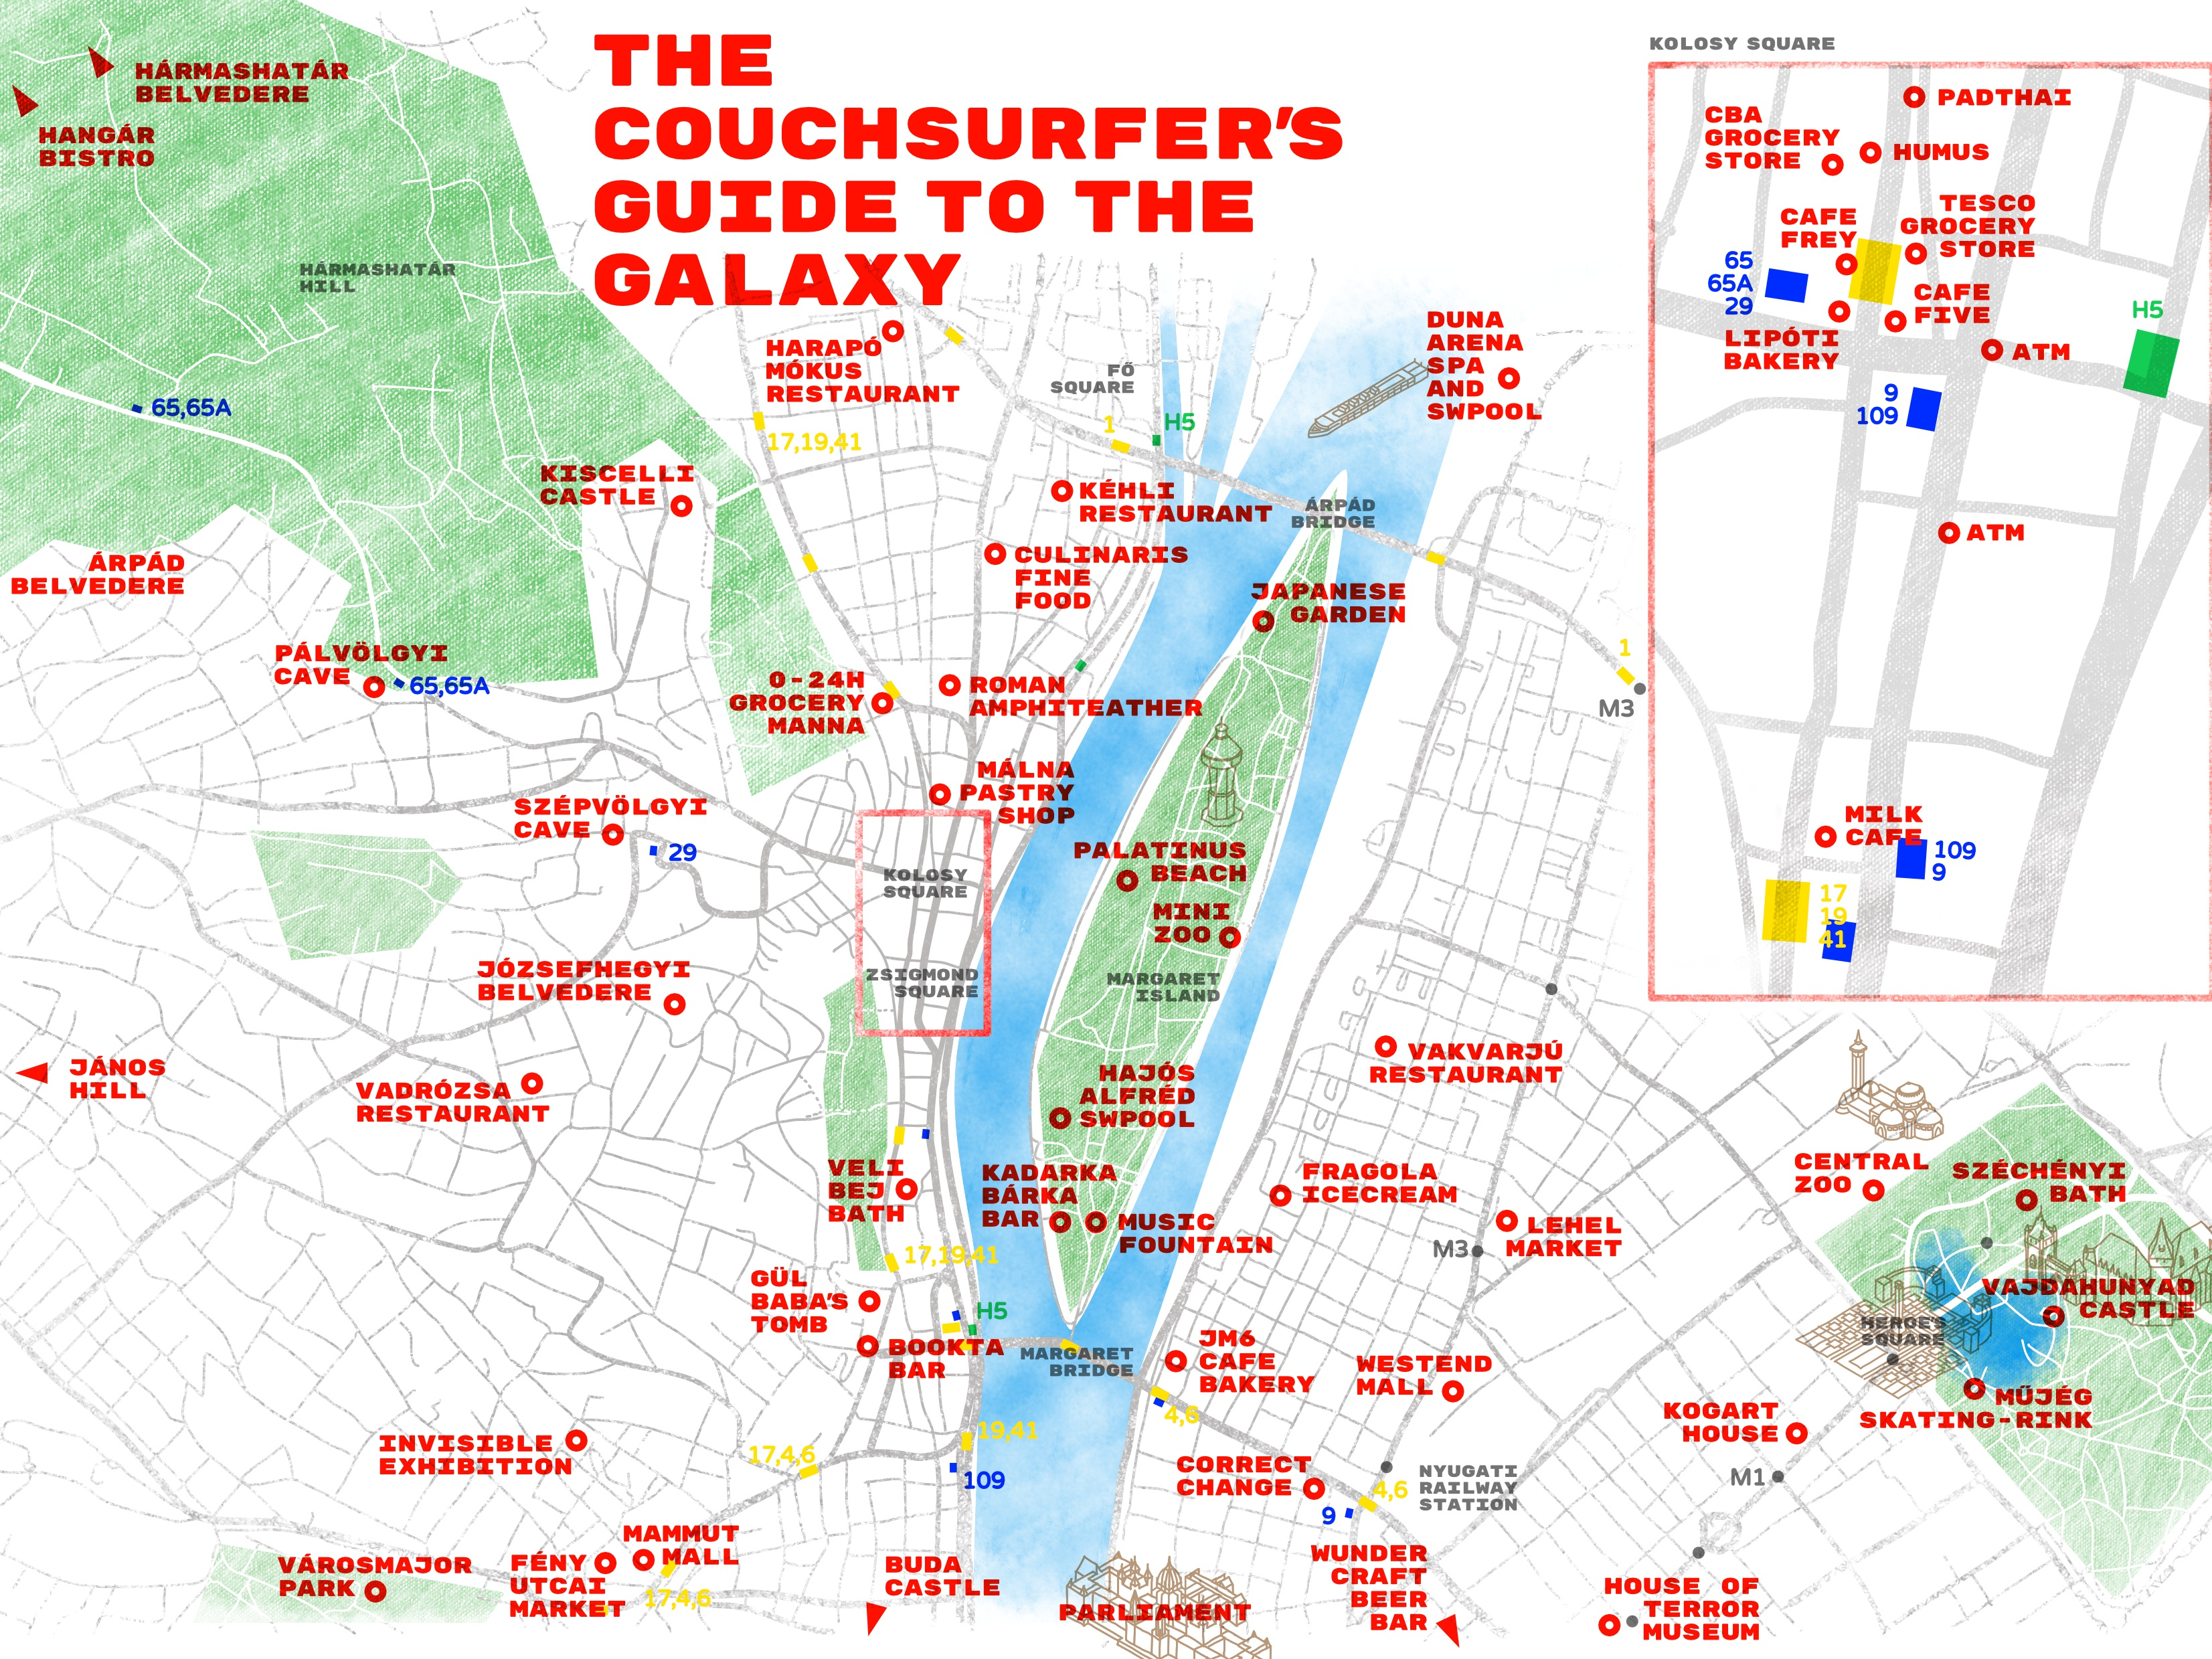 The Couchsurfes Map By Dolphin Ganz On Dribbble